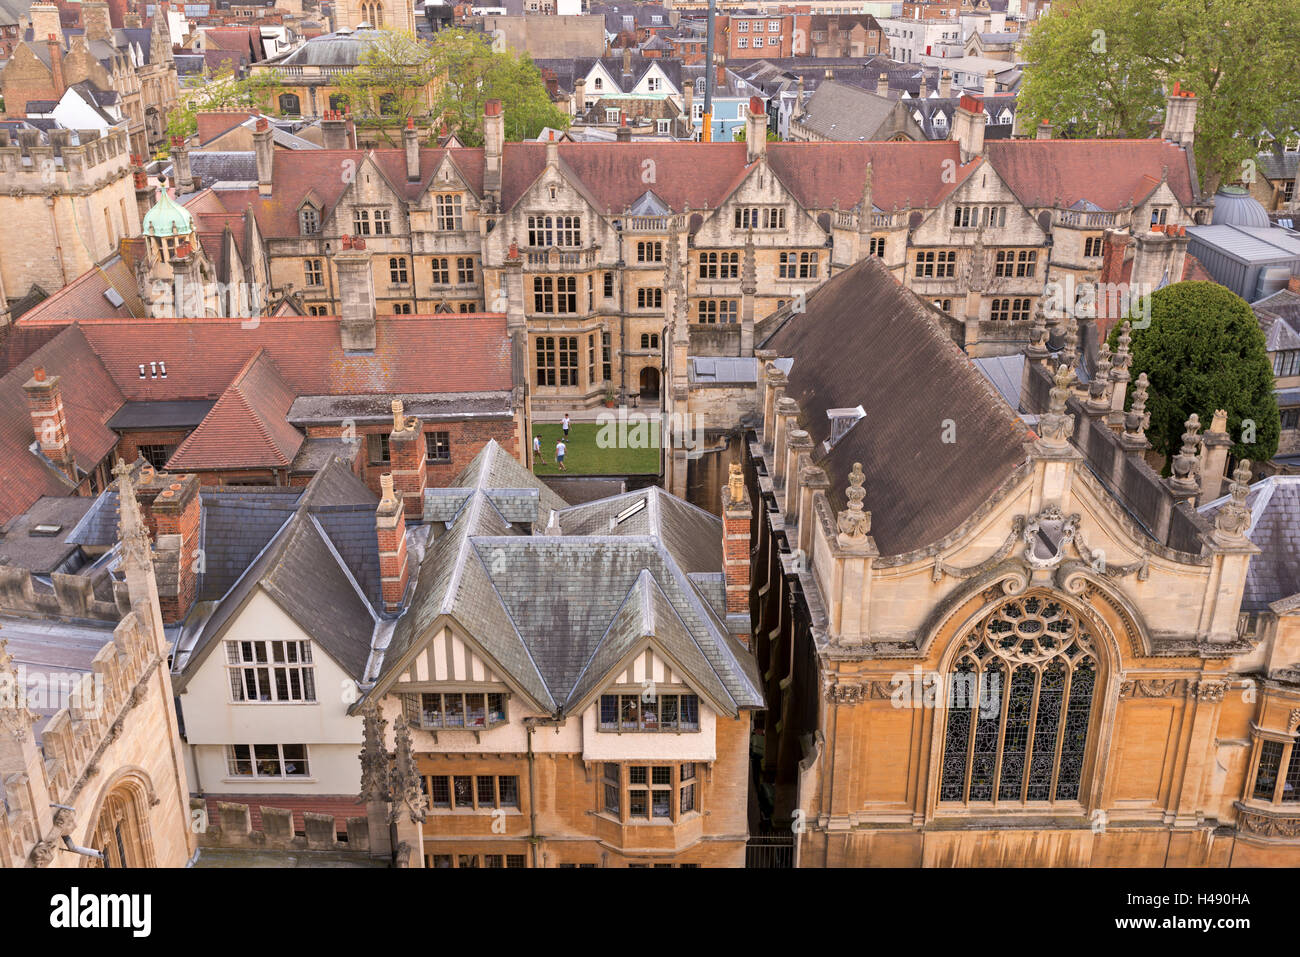 Aerial view of Brasenose College buildings in Oxford, Oxfordshire, England. - Stock Image